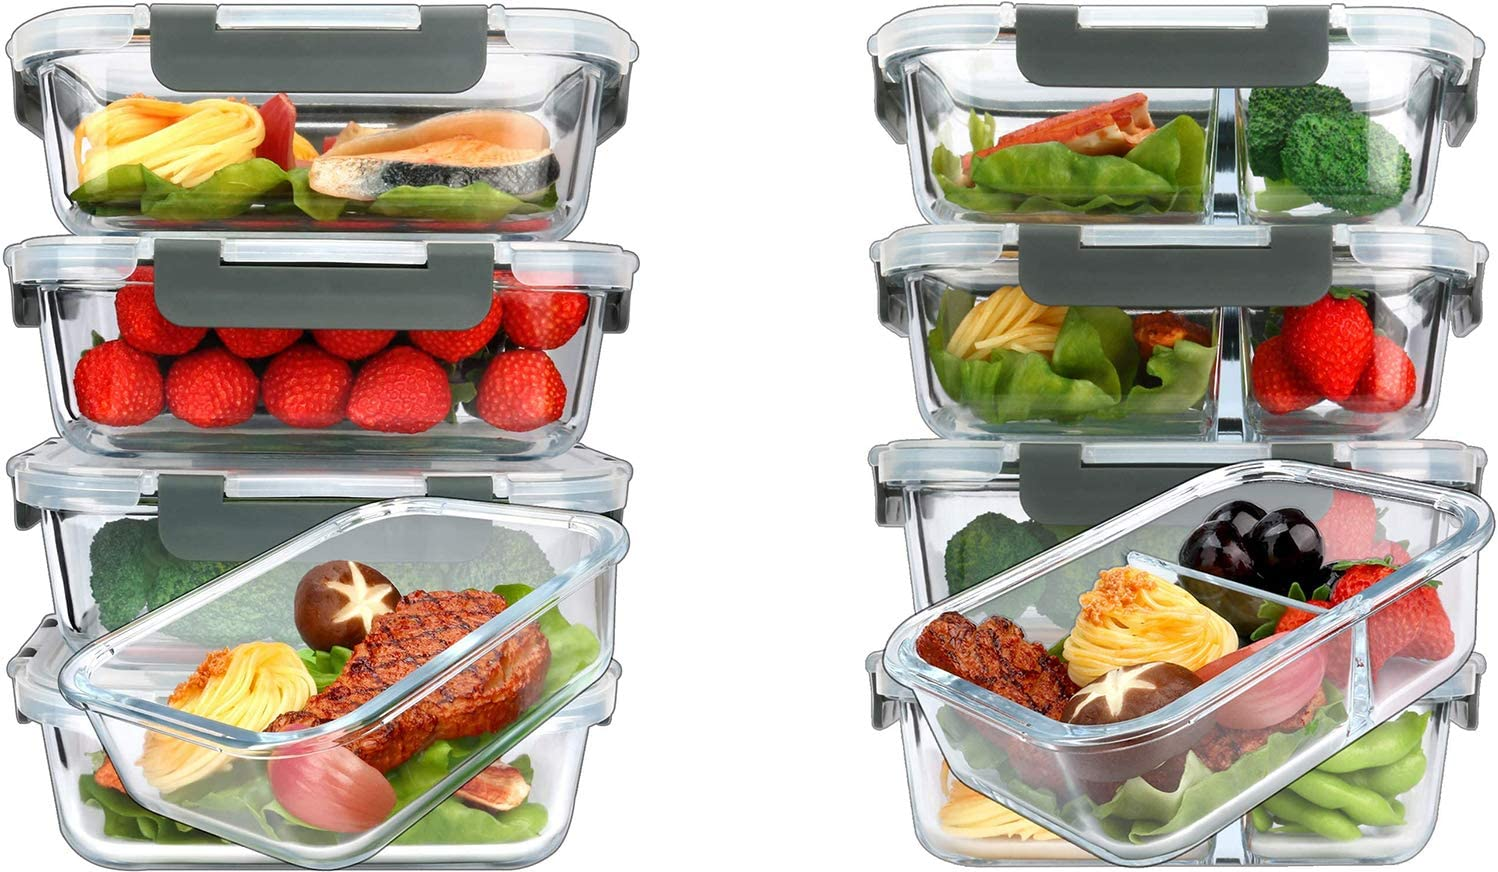 MCIRCO 36oz Single Compartment Glass Meal Prep Containers set of 5 and 36oz 2 Compartments Portion Control Glass Meal Prep Containers set of 5